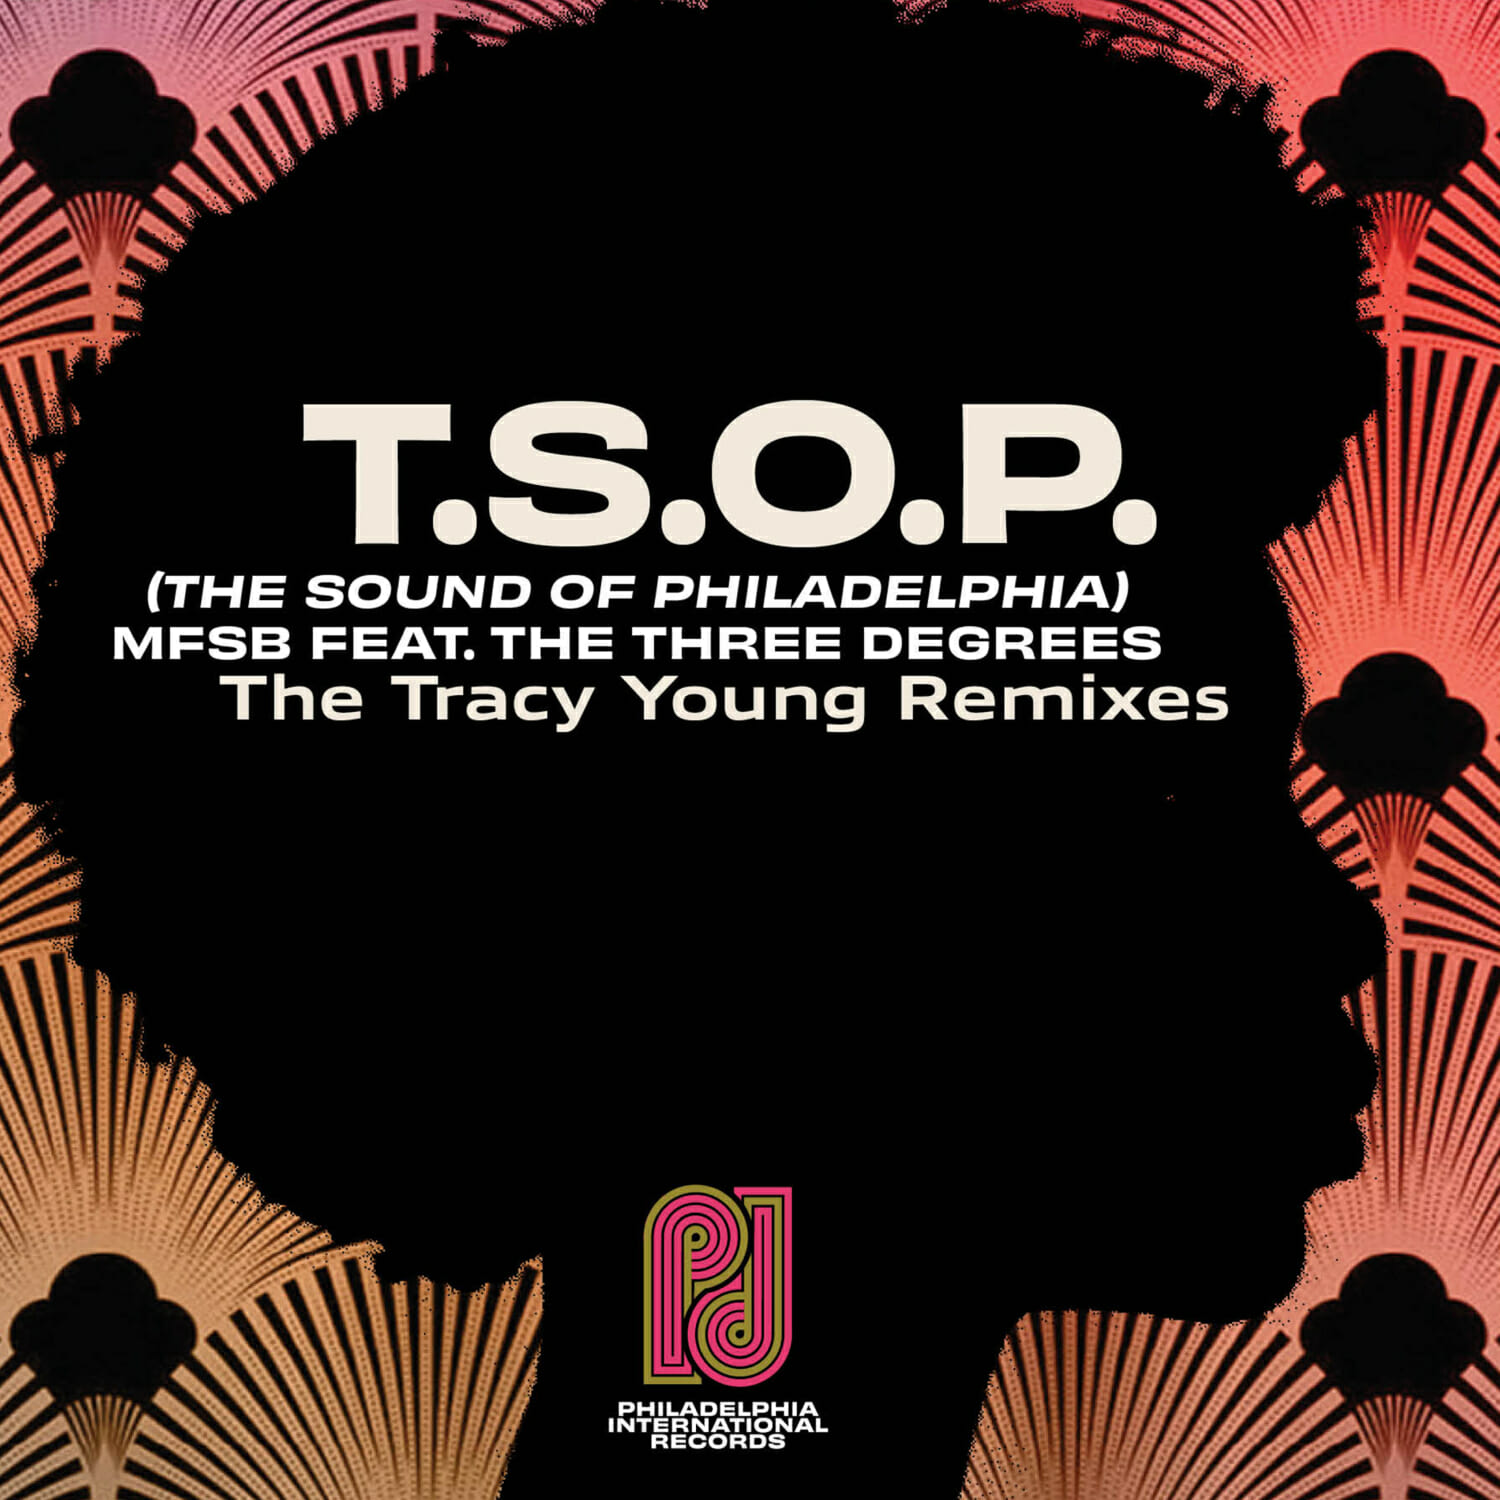 Premiere: Tracy Young remixes MFSB's legendary melody from 'T.S.O.P. (The Sound of Philadelphia)'PIR T.S.O.P